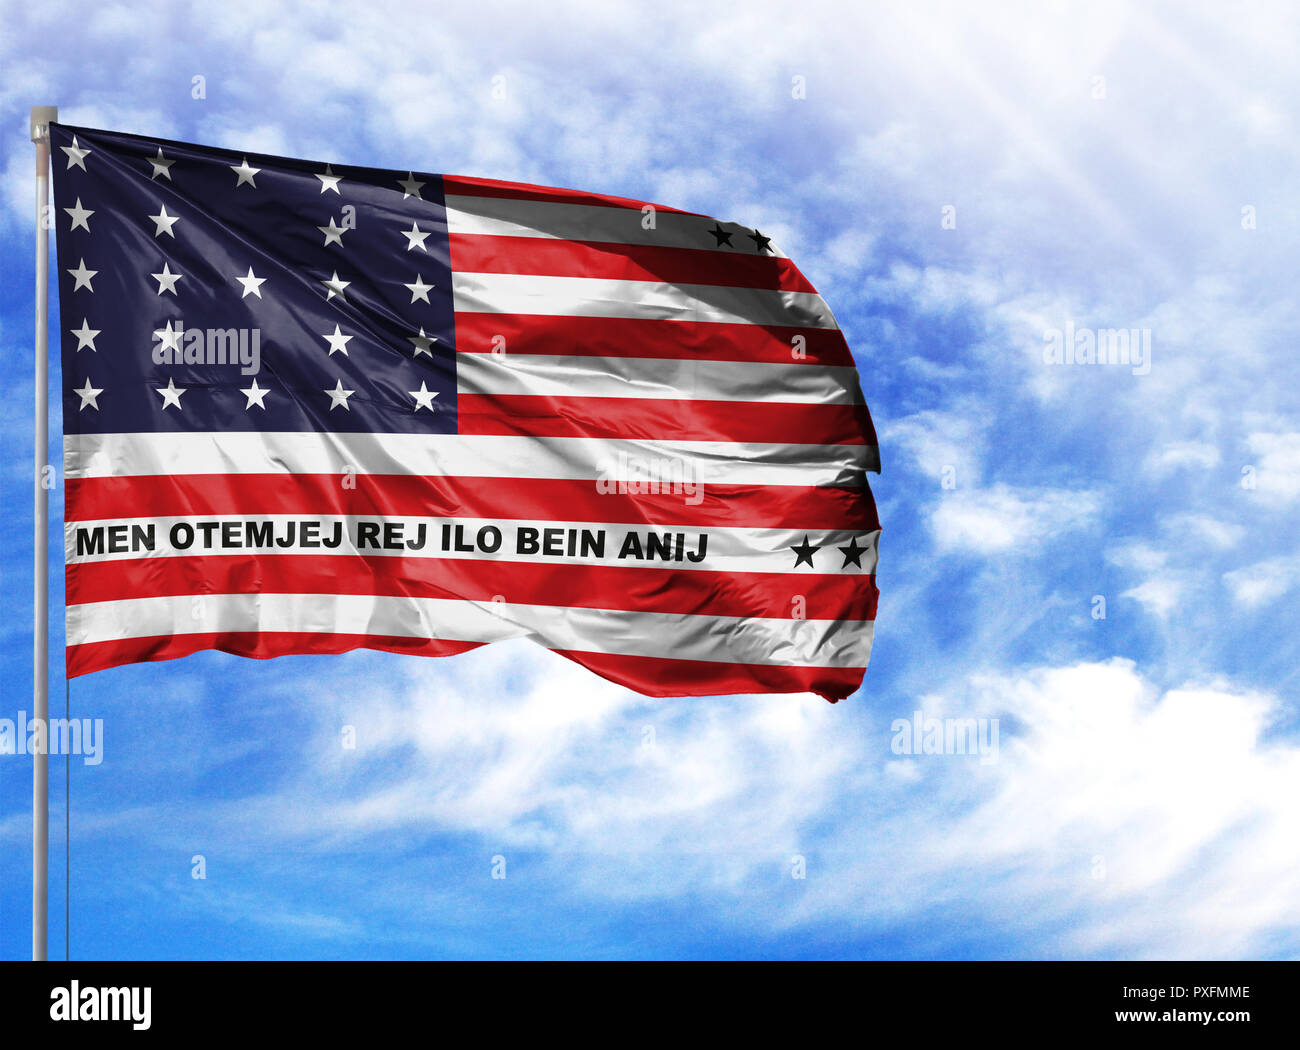 National flag of Bikini Atoll on a flagpole in front of blue sky. - Stock Image